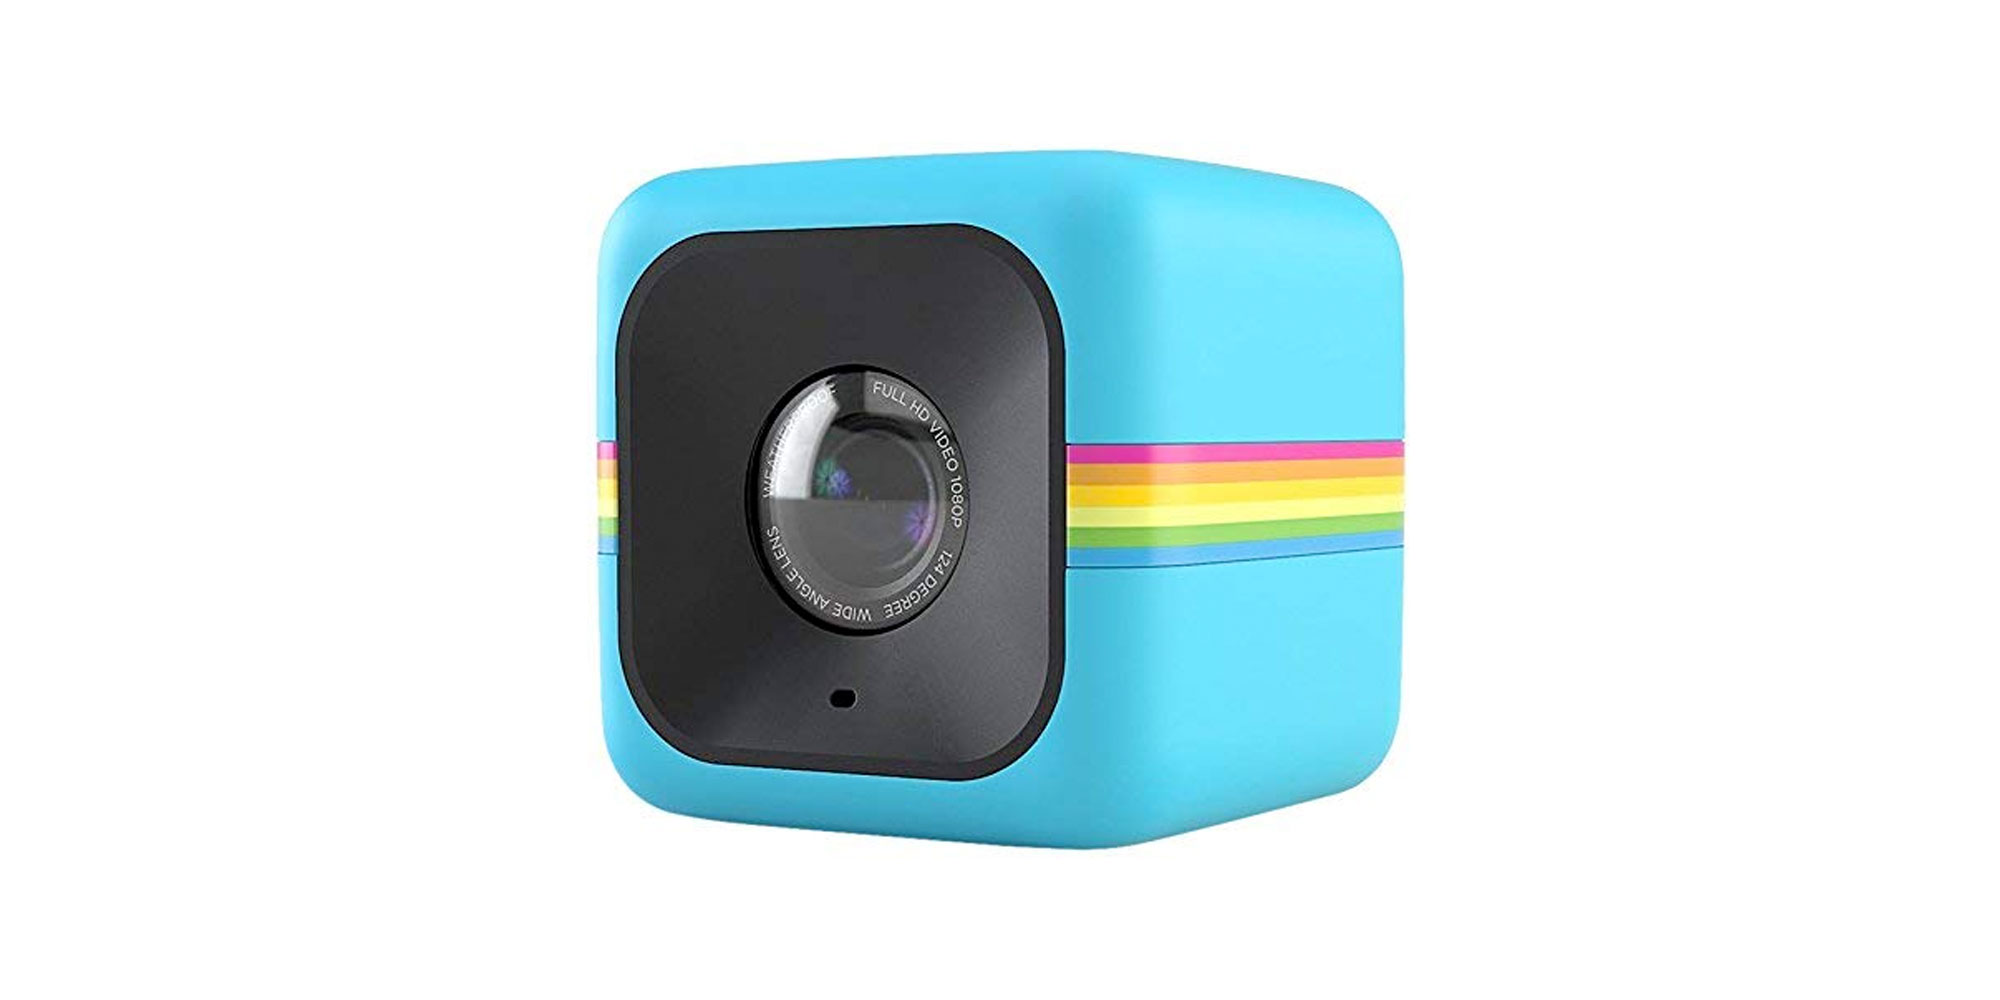 Bring an action camera on your next adventure for under $20 at Amazon - 9to5Toys